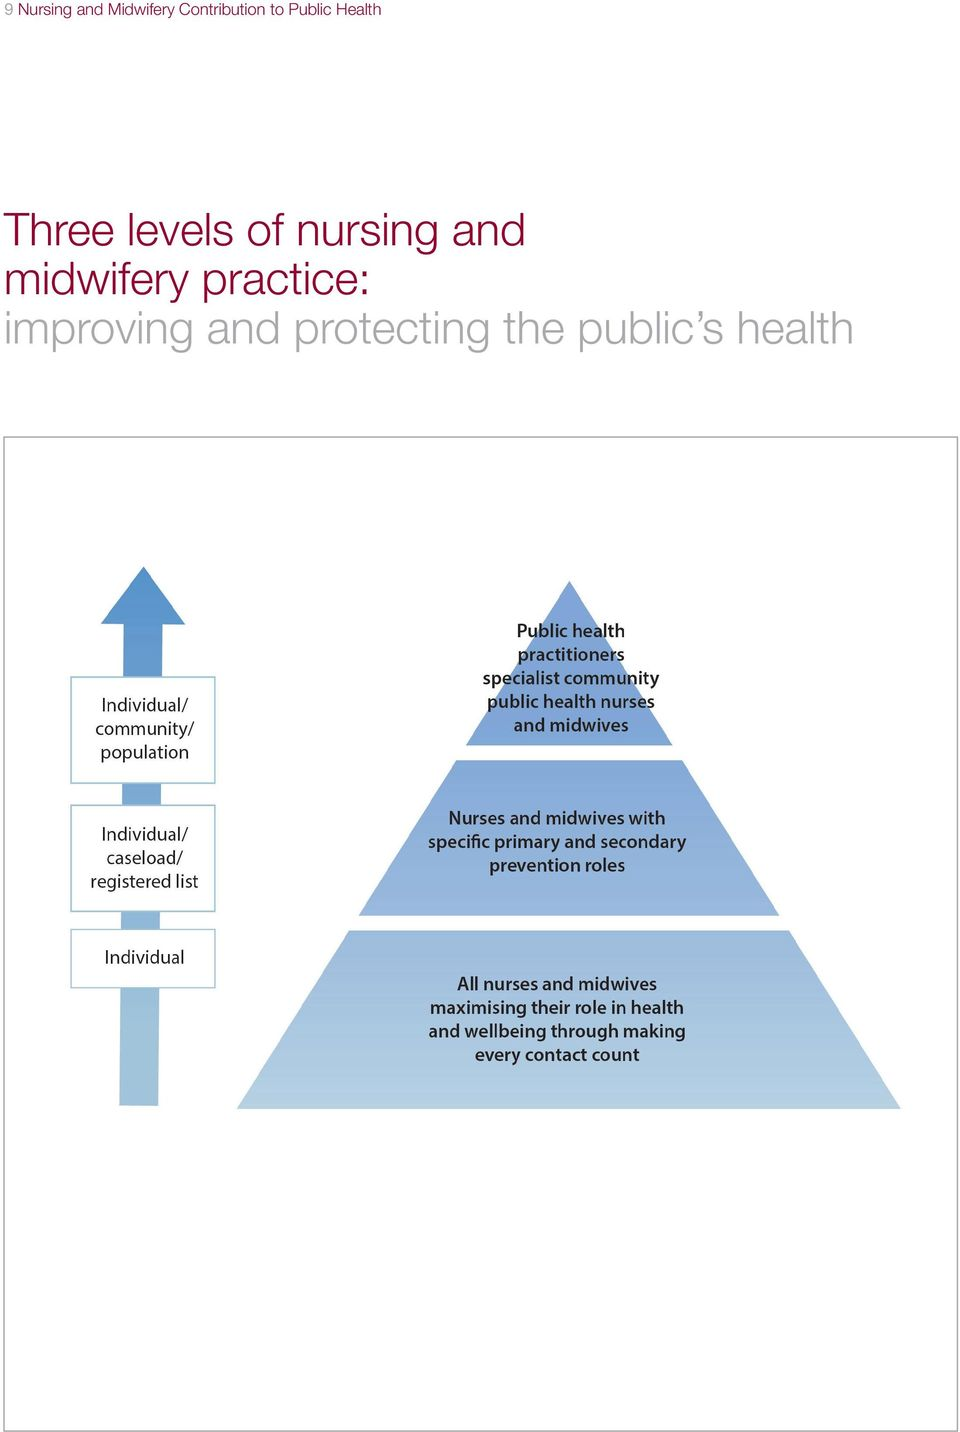 nursing and midwifery practice: